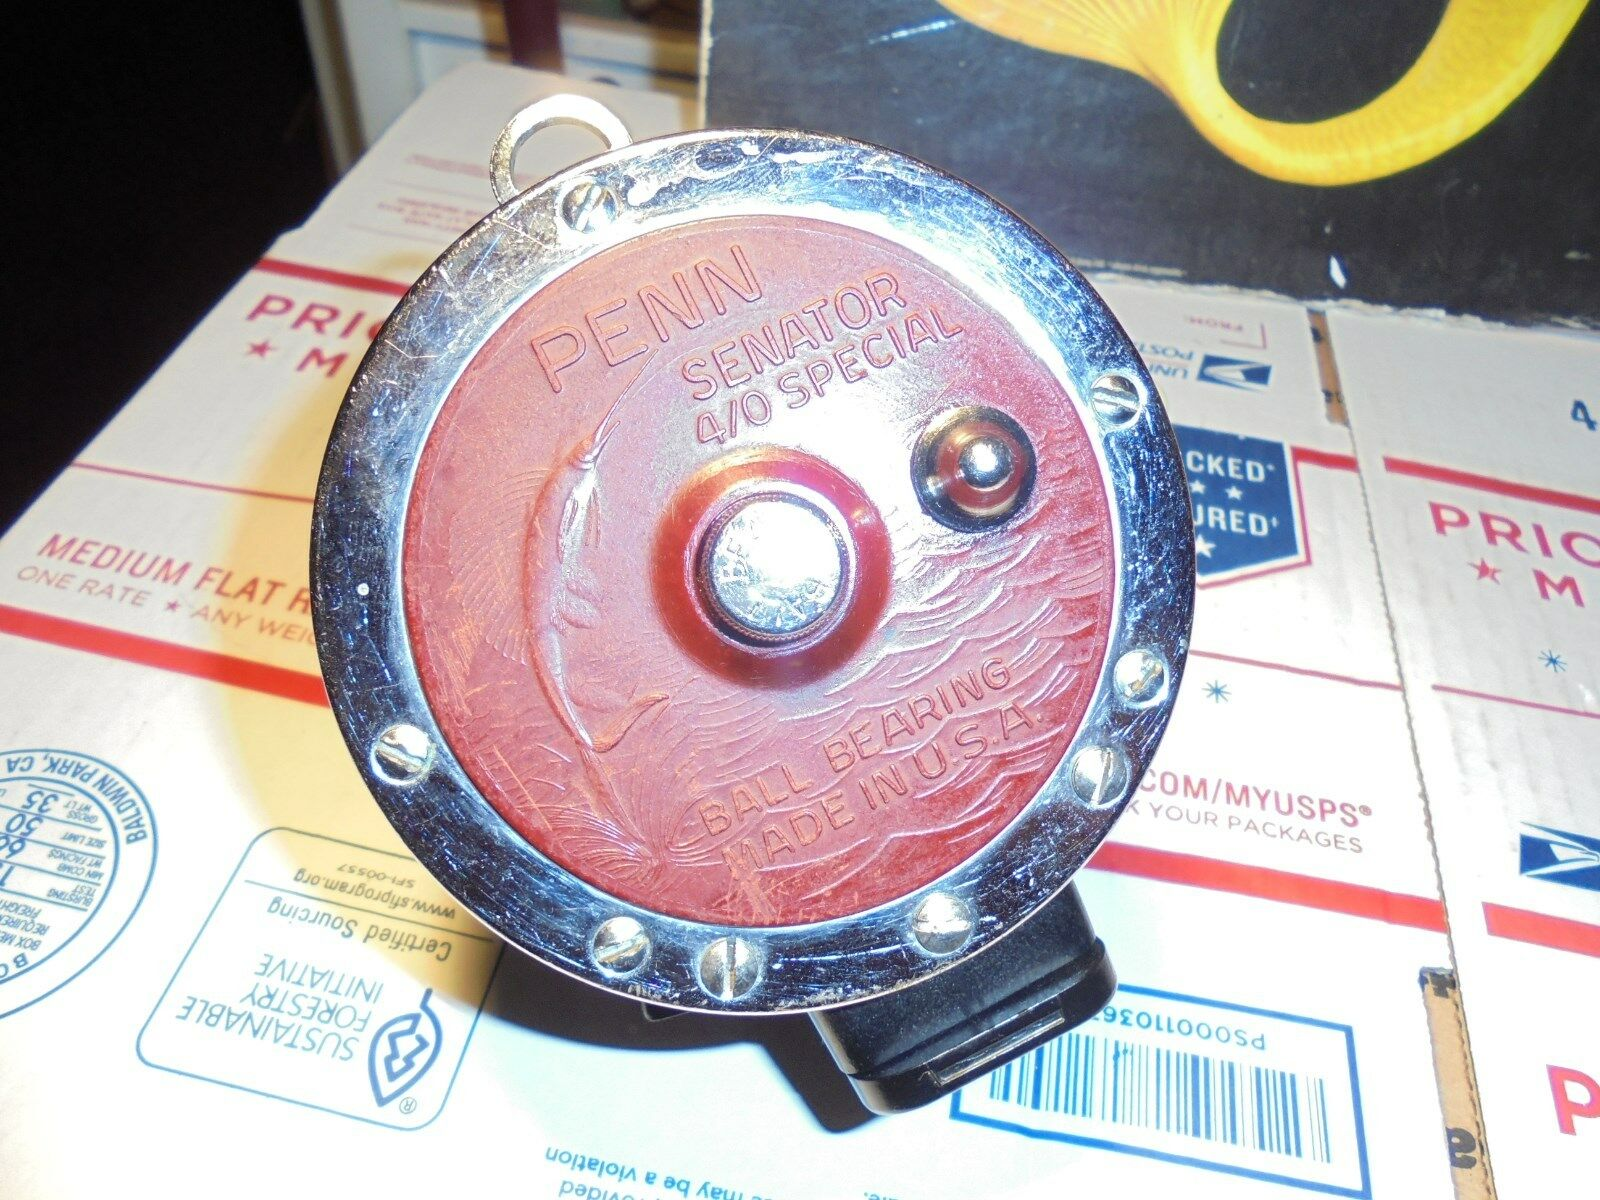 VINTAGE 4/0 SPECIAL-113H-NEWELL PENN SPECIAL-113H-NEWELL 4/0 BARS & REEL SEAT,ALUMINUM SPOOL c82897